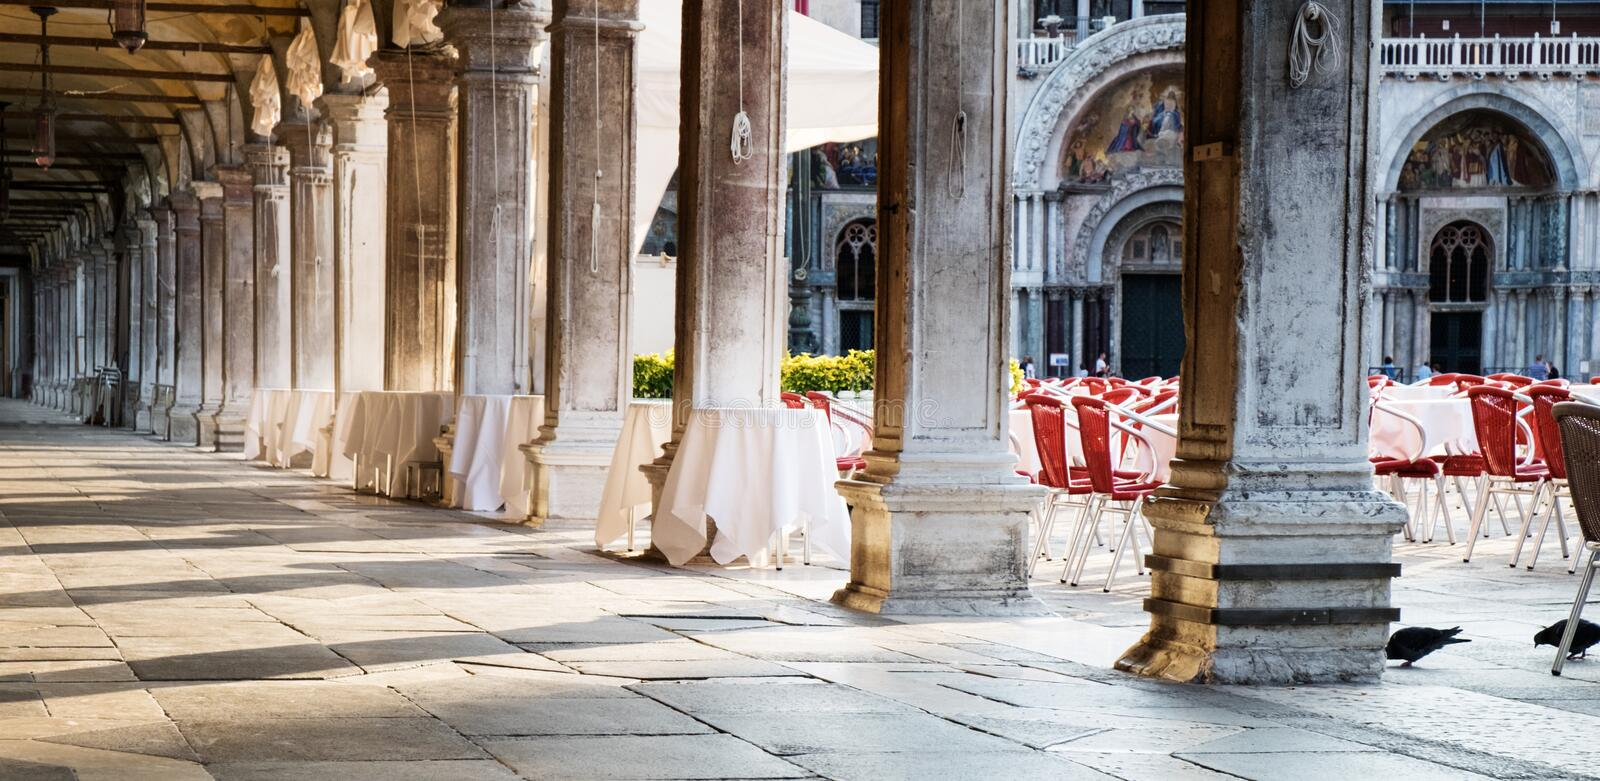 Piazza San Marco loggia with cafe tables royalty free stock photos